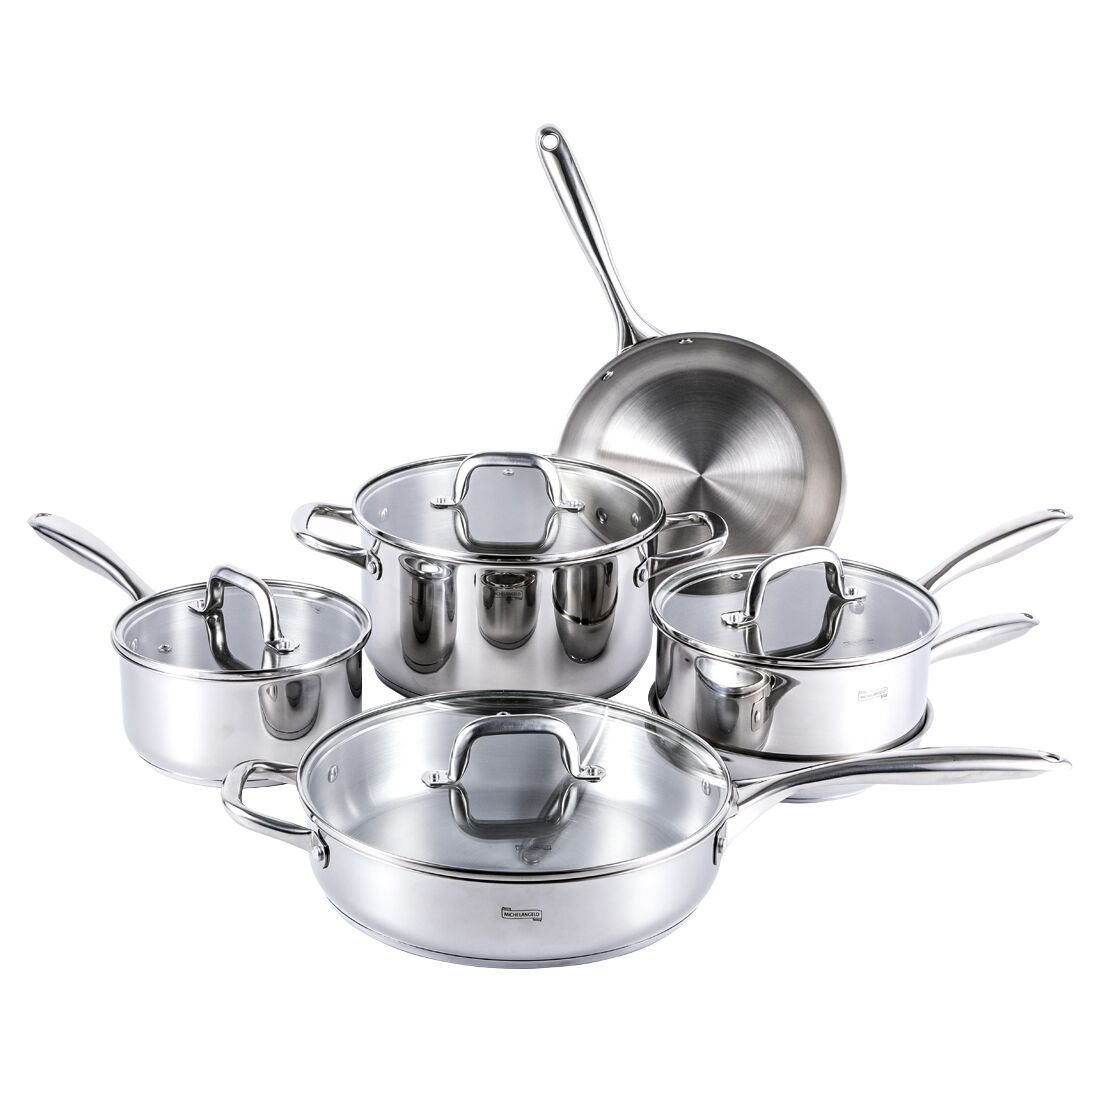 MICHELANGELO Stainless Cookware Technology Induction